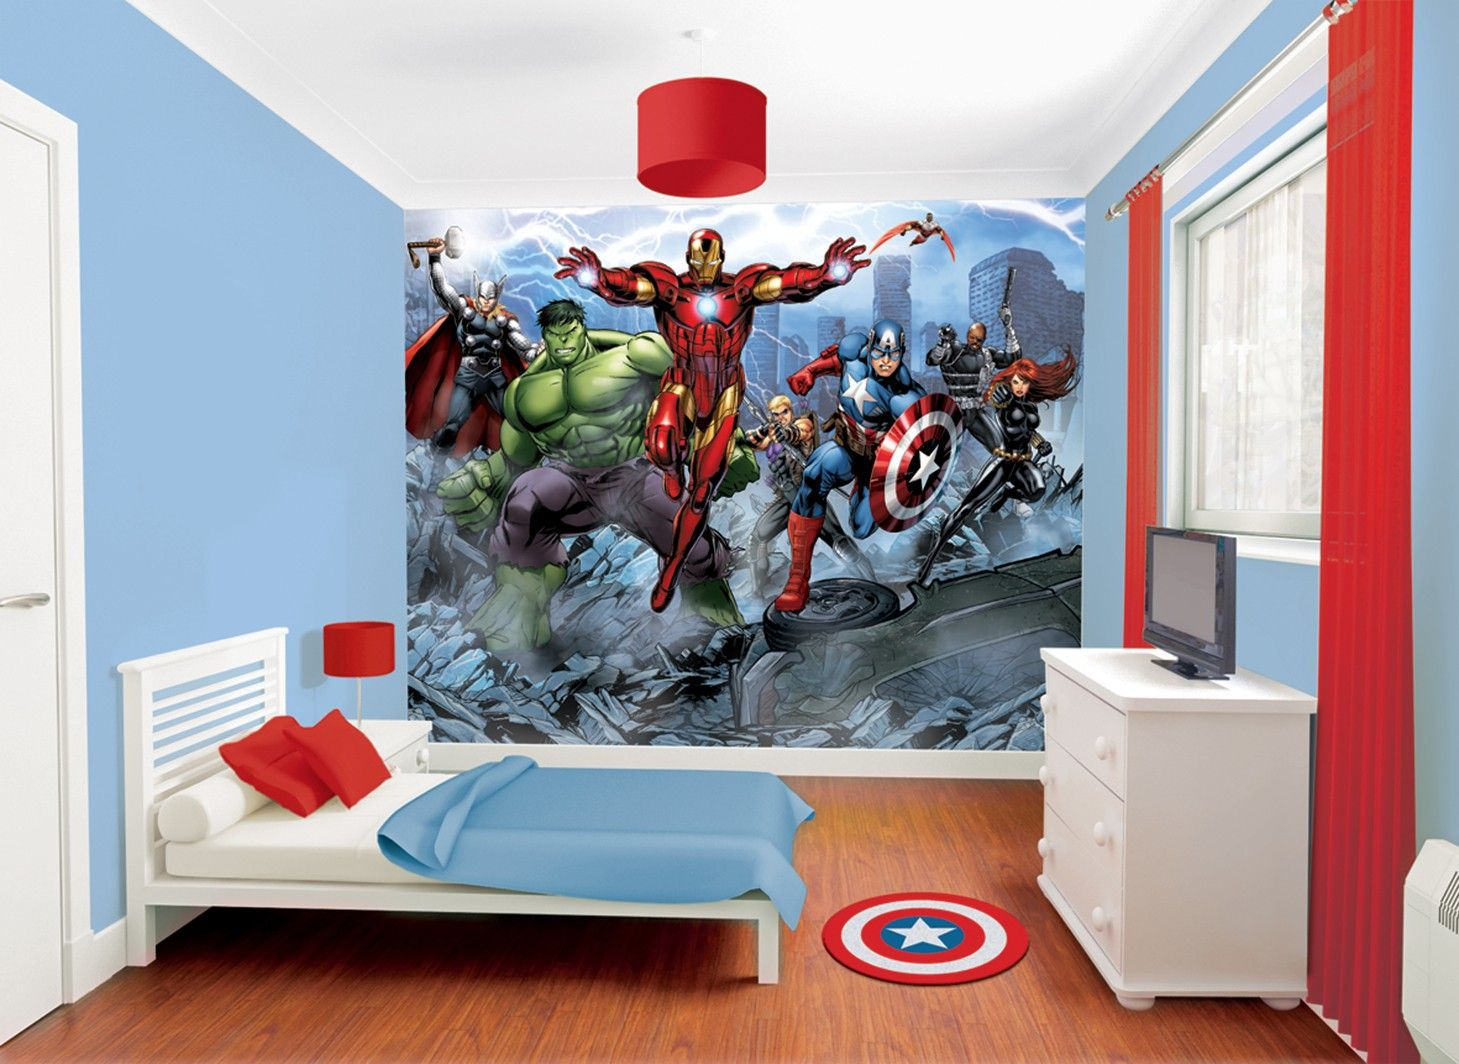 Marvel Themed Room Classy Marvel Avengers Wallpaper Murals.the Boys Need This For Their Inspiration